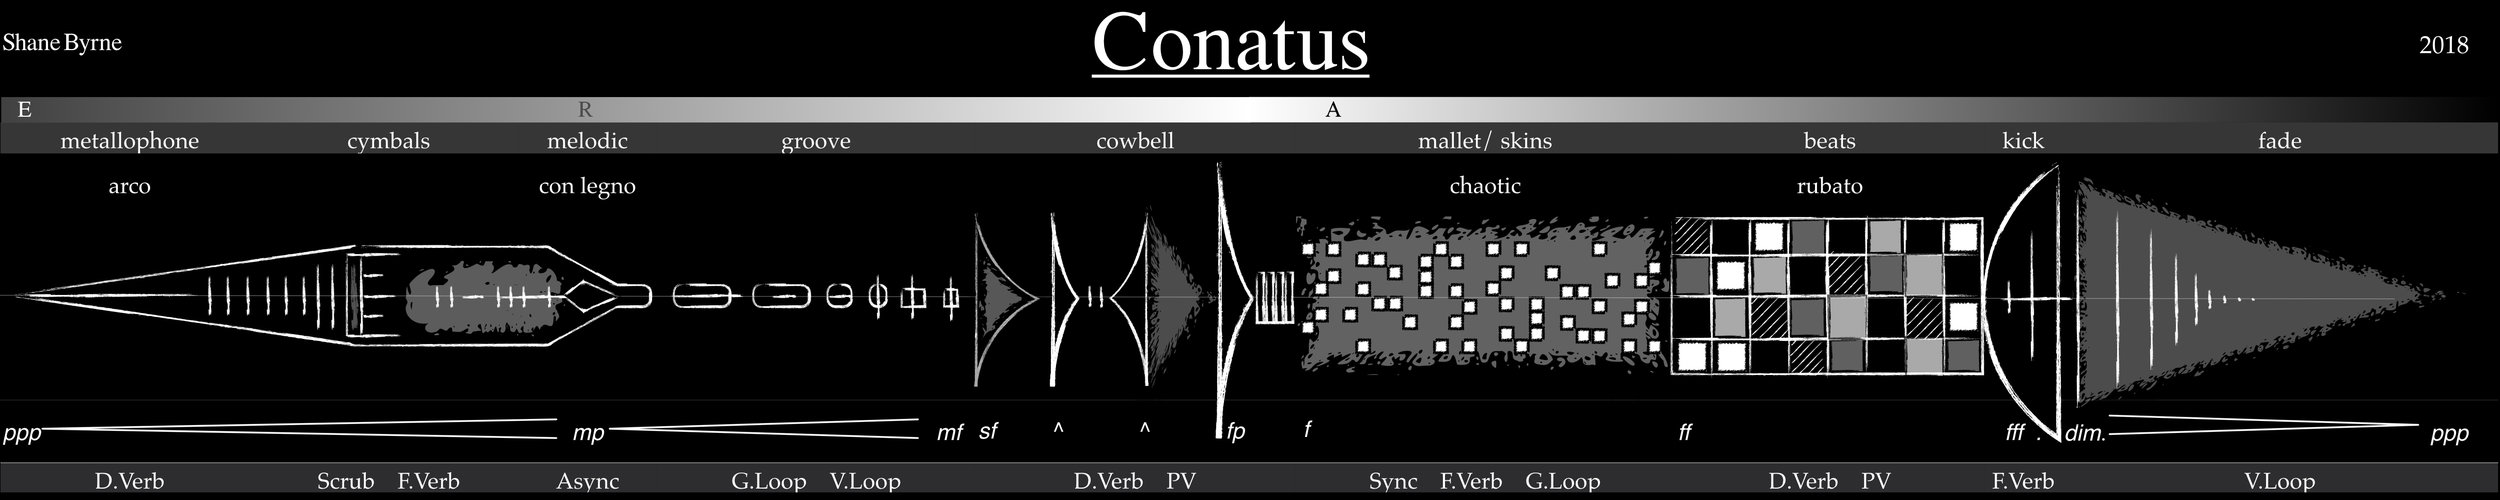 Conatus_GraphicScore3.jpeg